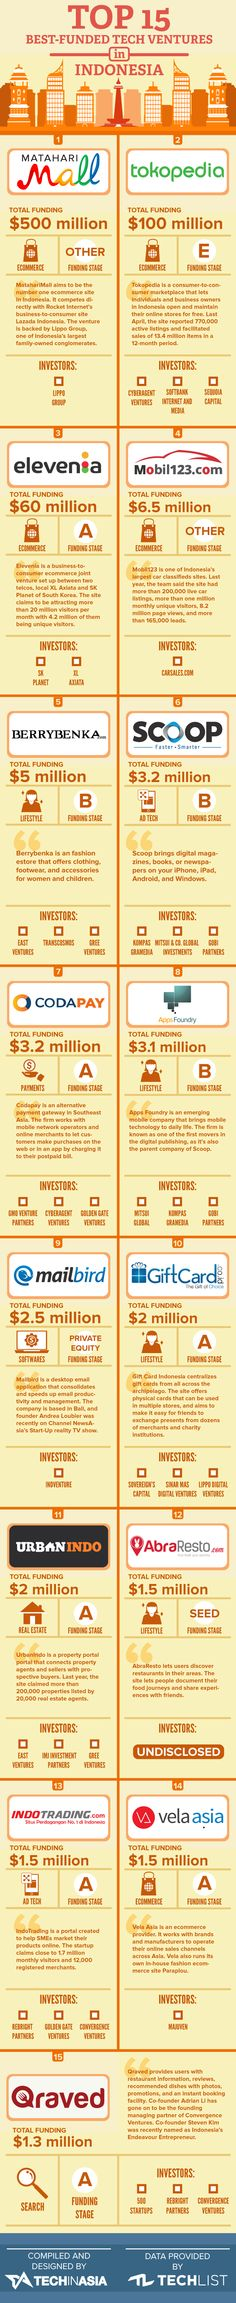 15-Most-Well-Funded-Startups-(Indonesia) (1)